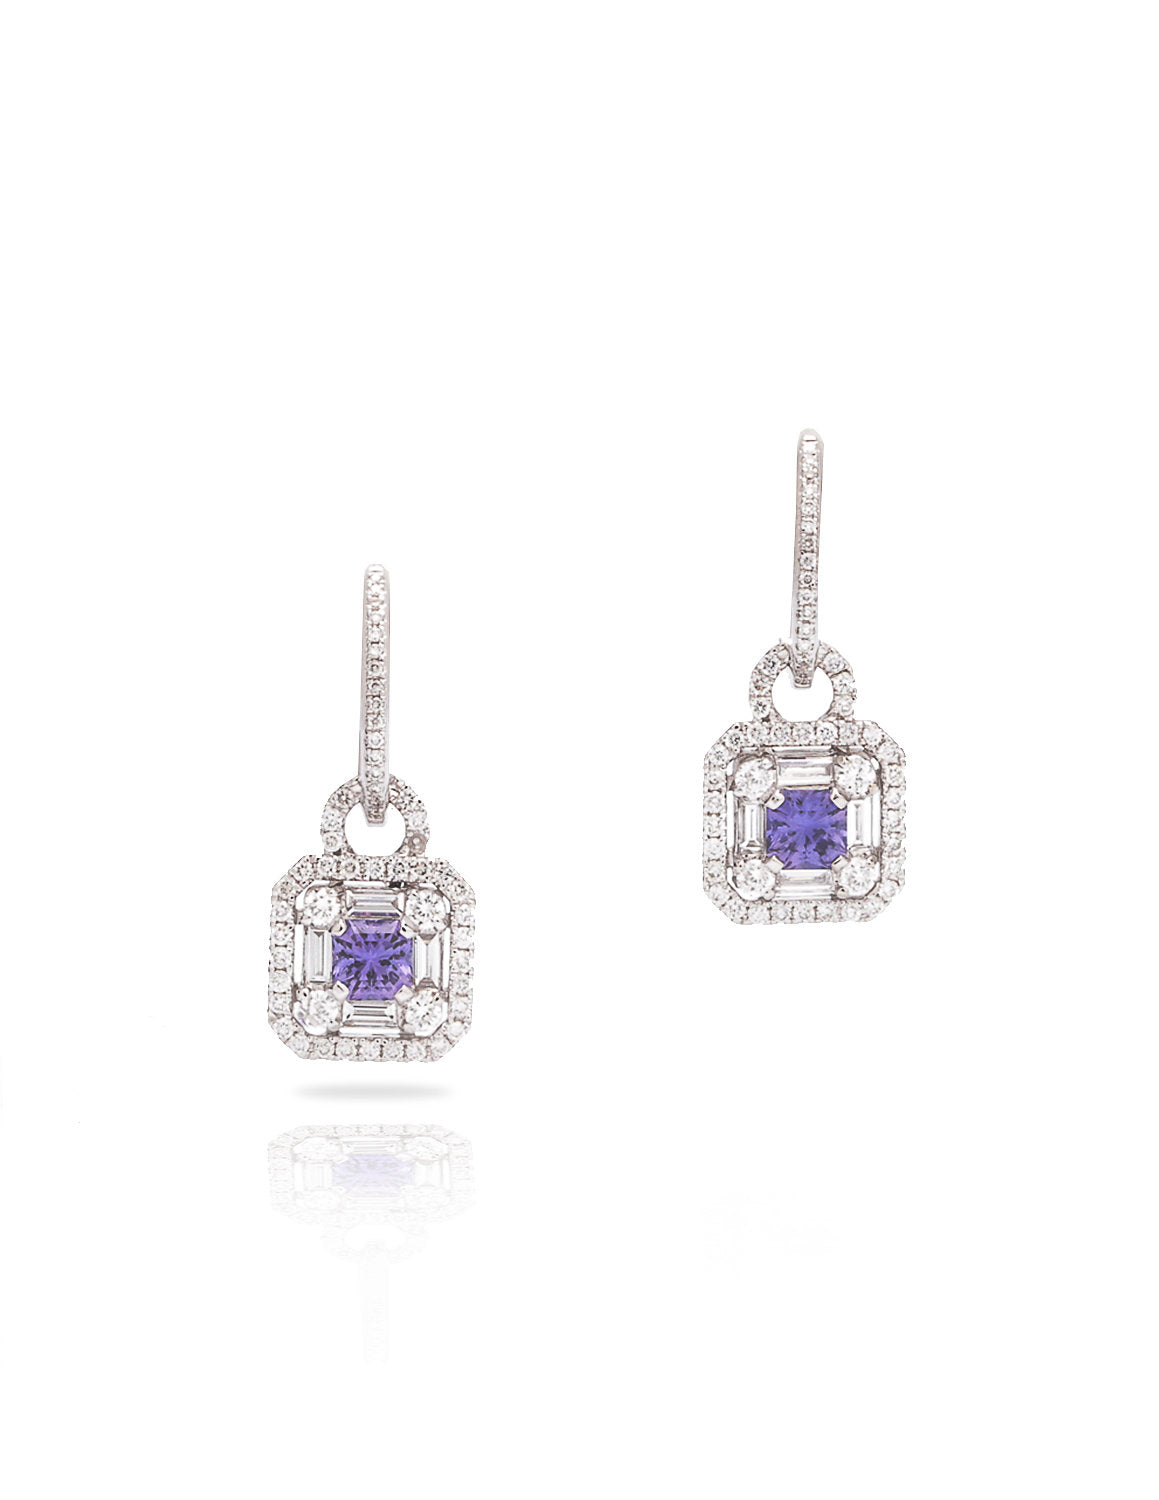 Asscher Cut Purple Sapphire and Diamond Earrings - Charles Koll Jewellers